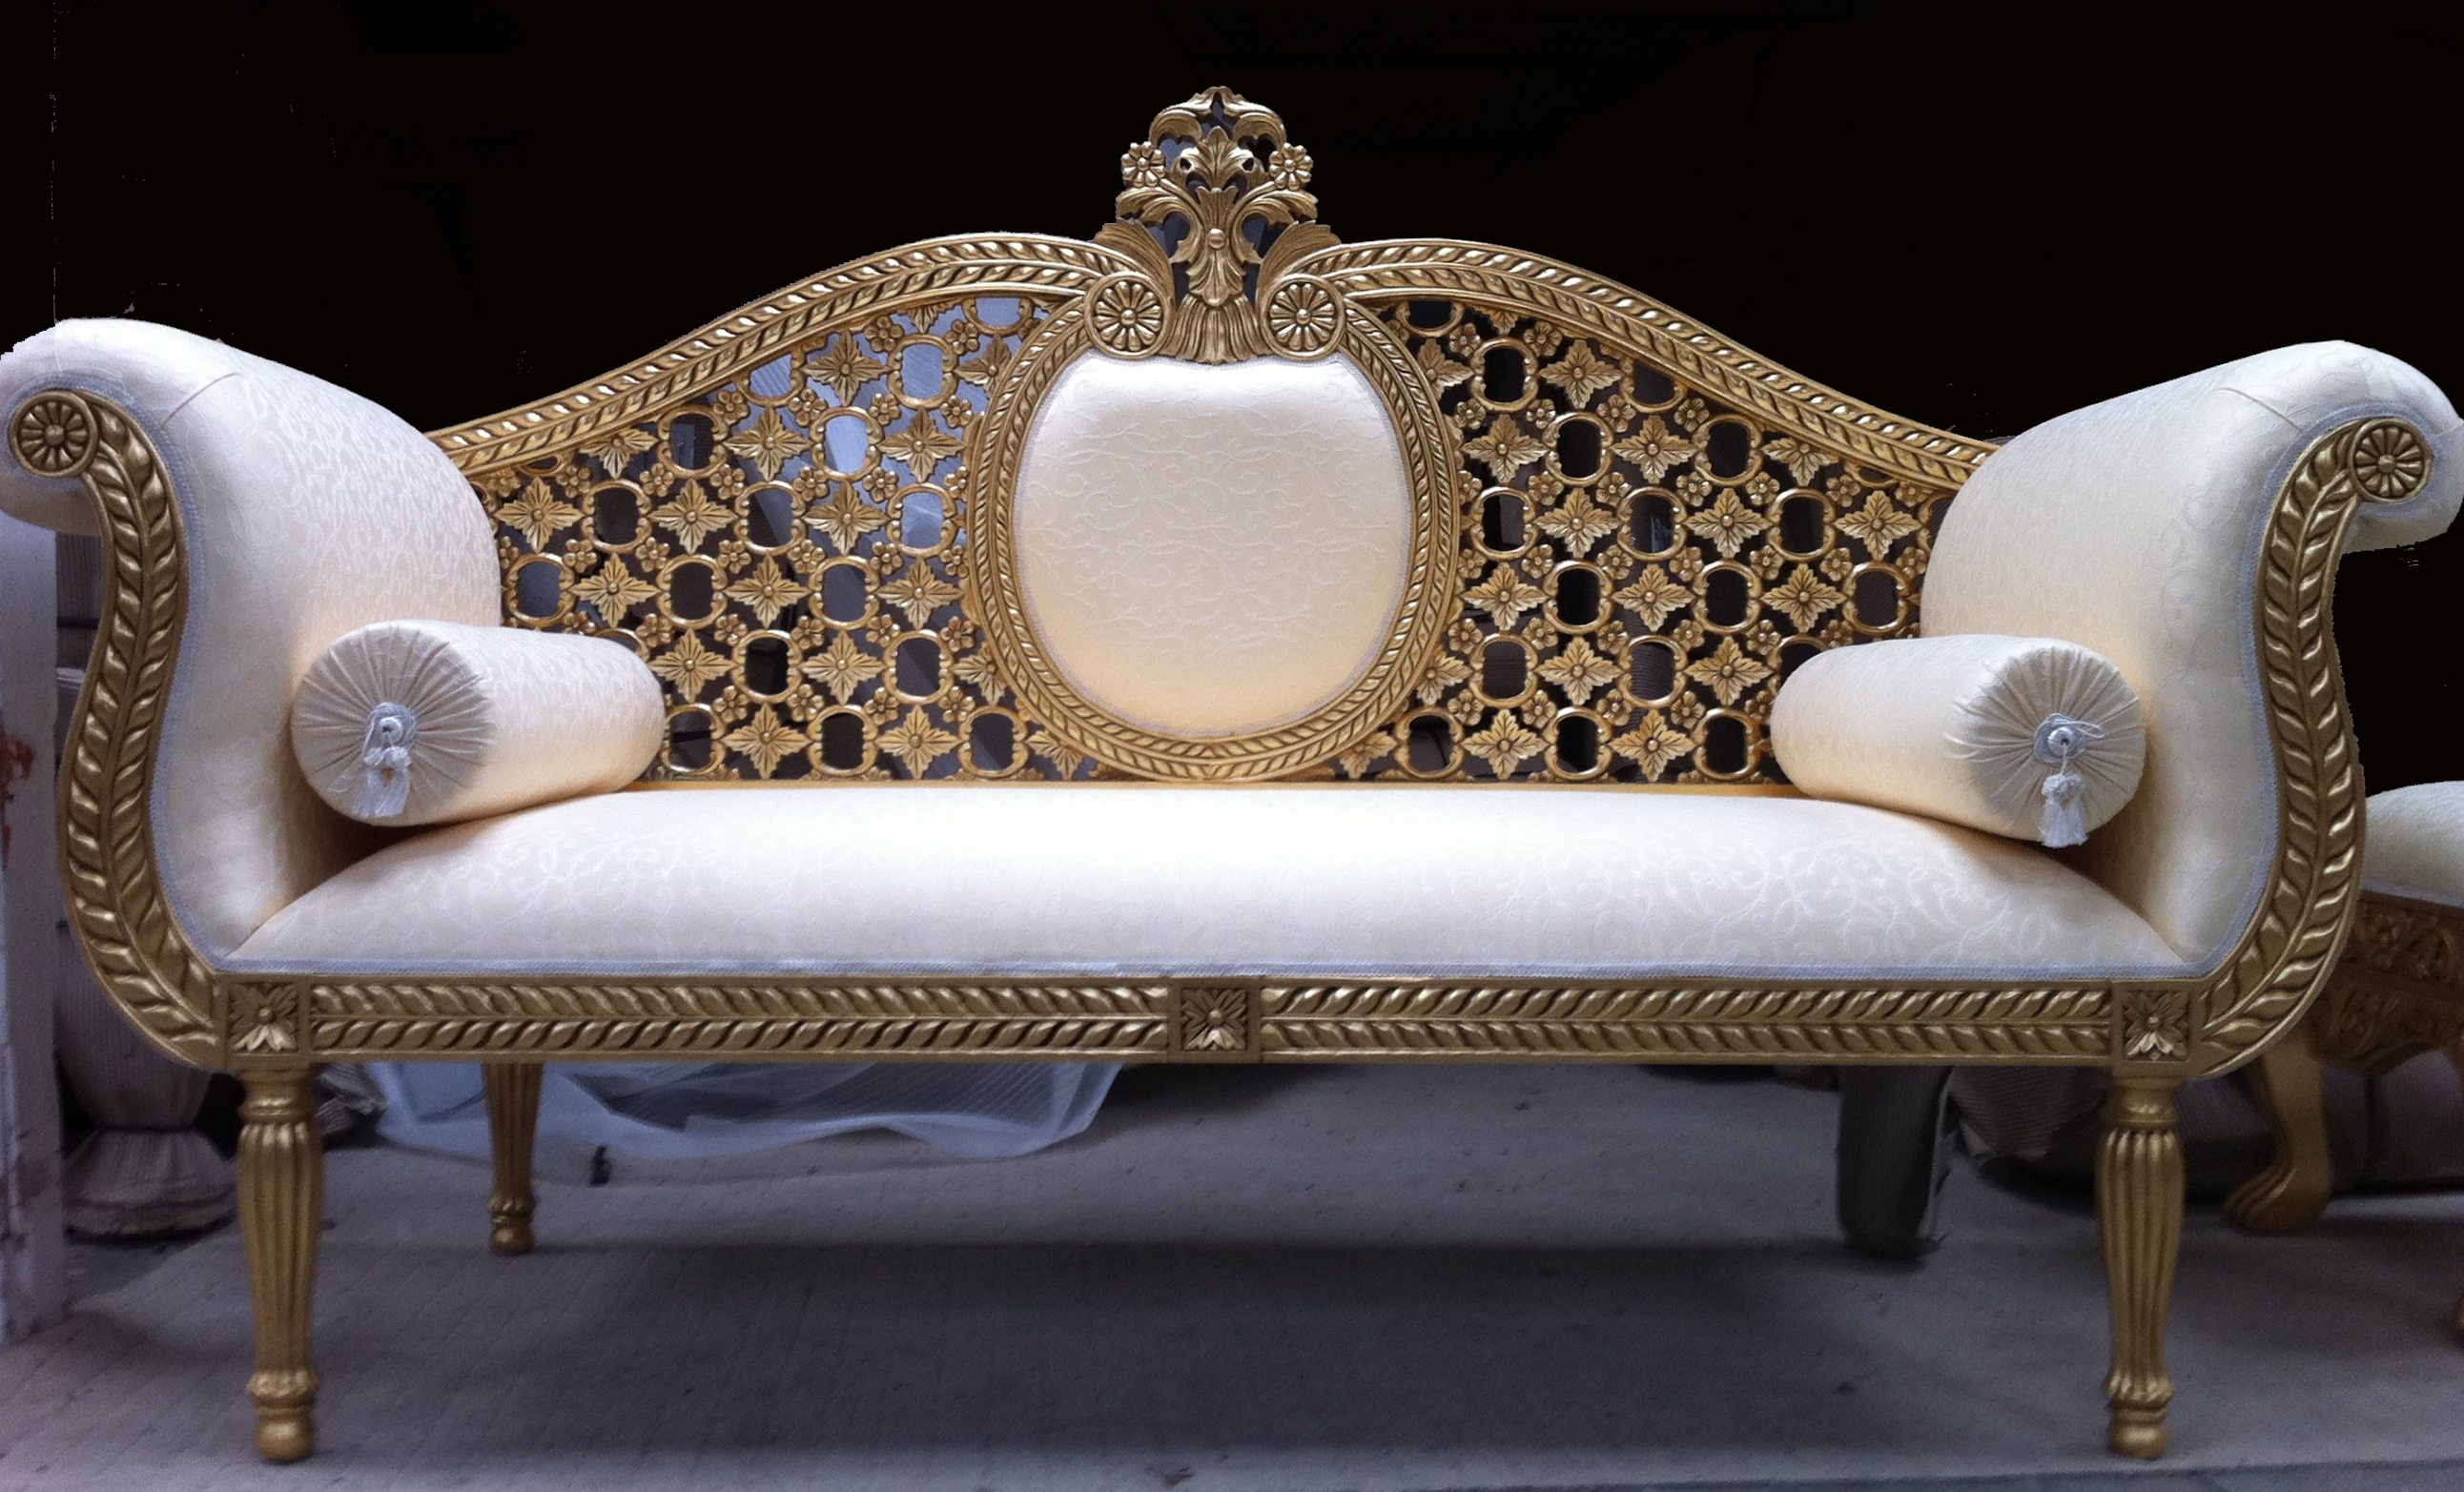 Aa1 Alto Wedding Stage 3 Piece Suite Ornate Gold Leaf